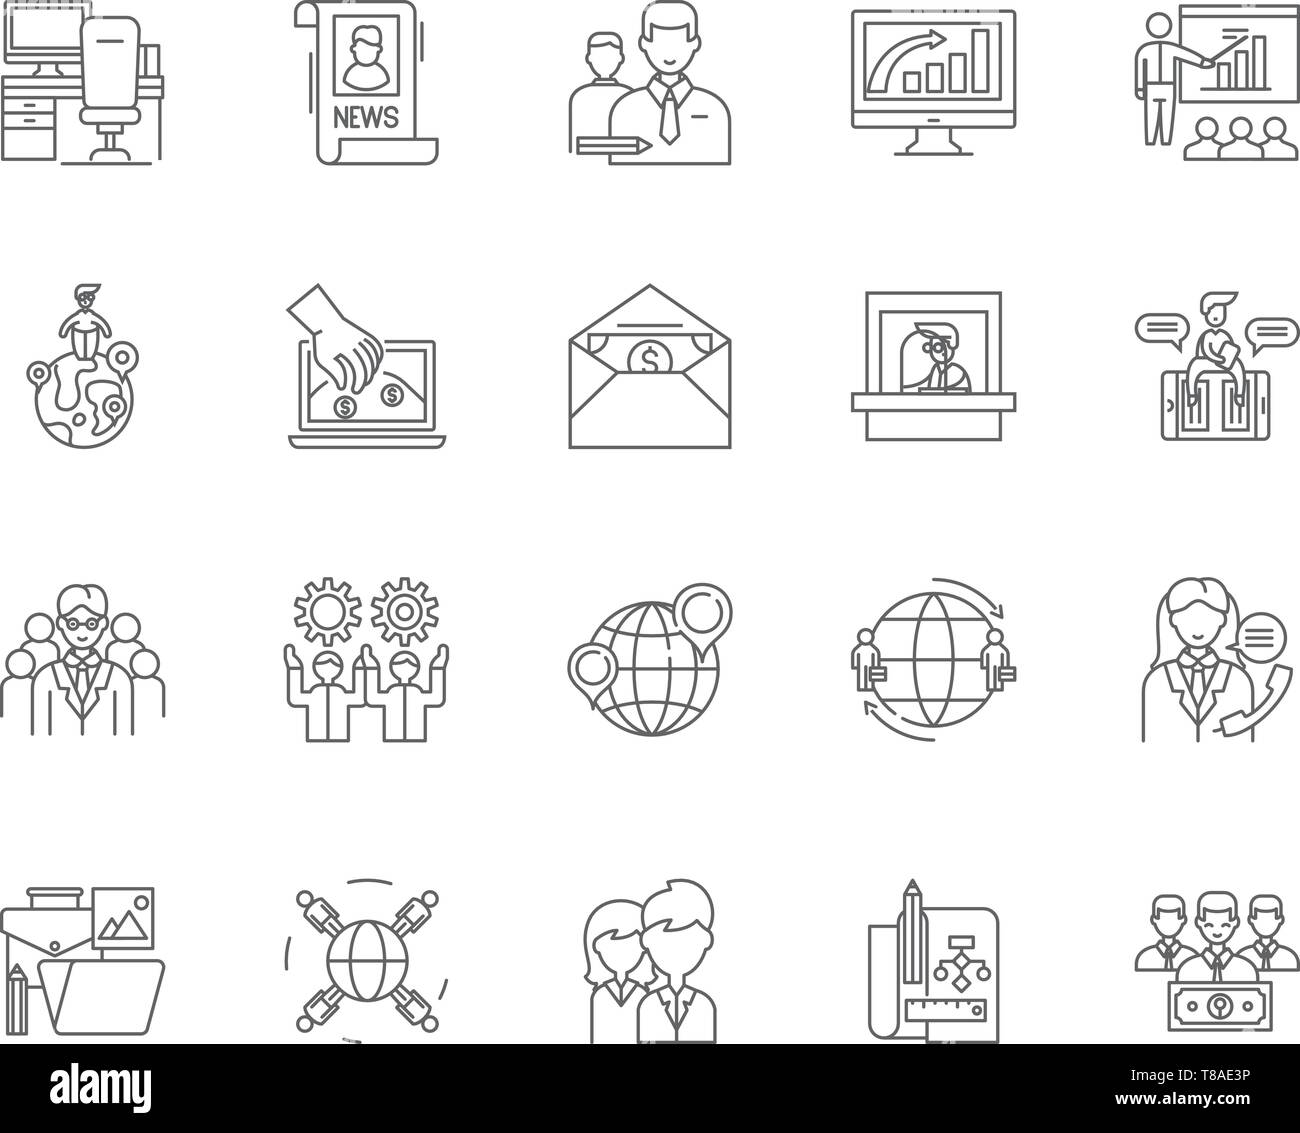 Chambers of commerce line icons, signs, vector set, outline illustration concept  - Stock Vector